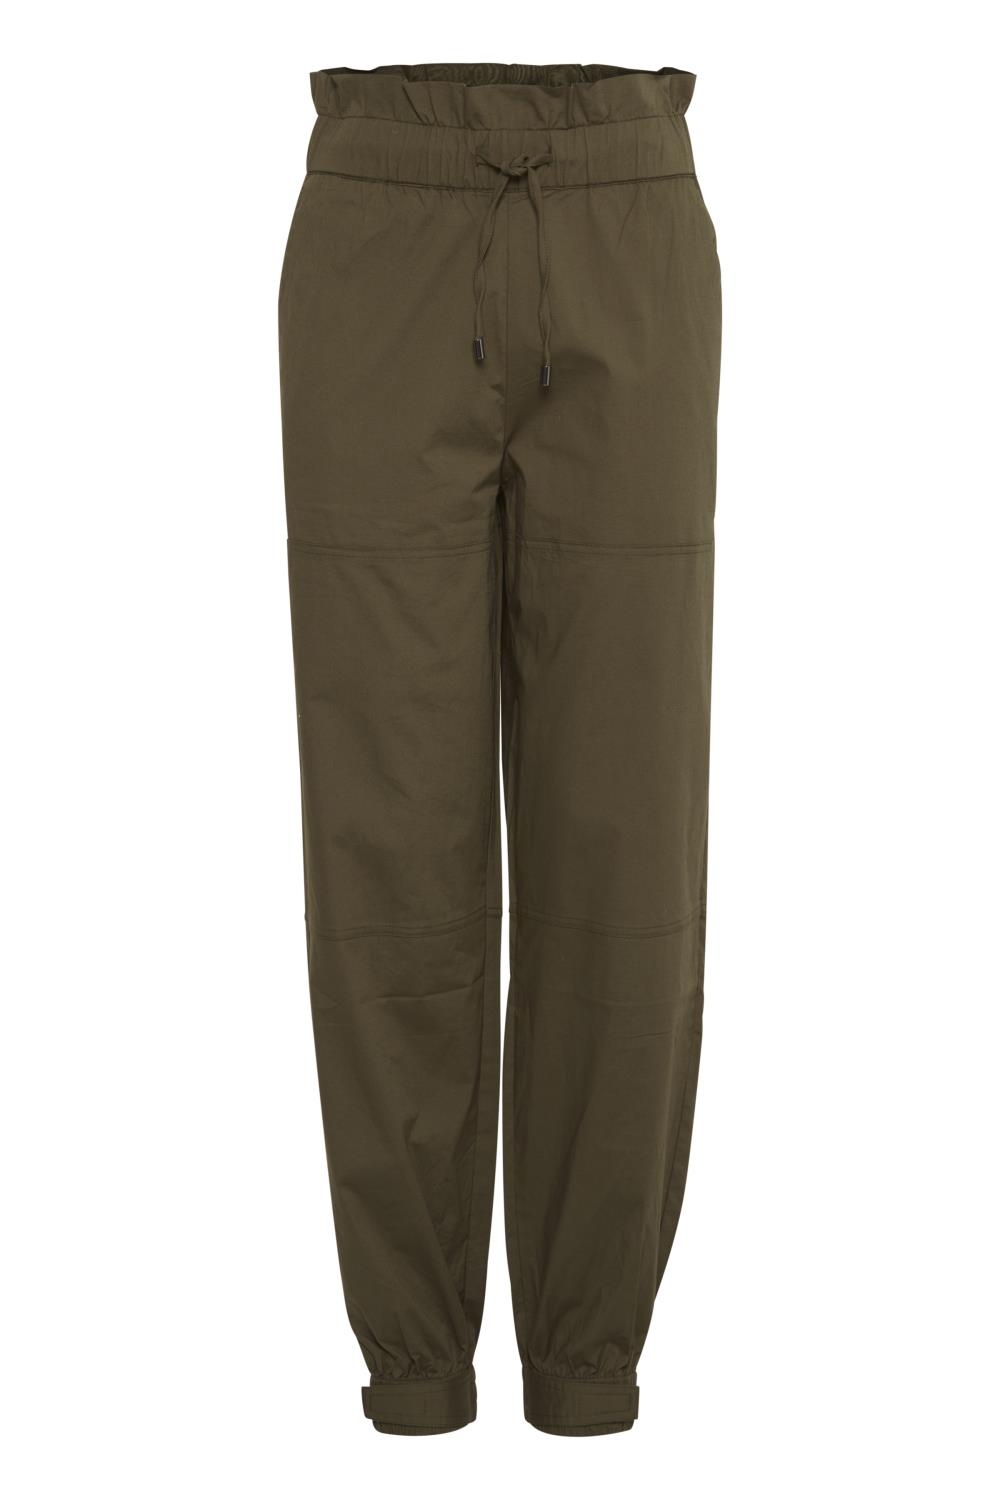 Pulz Helle loose pant, wiren